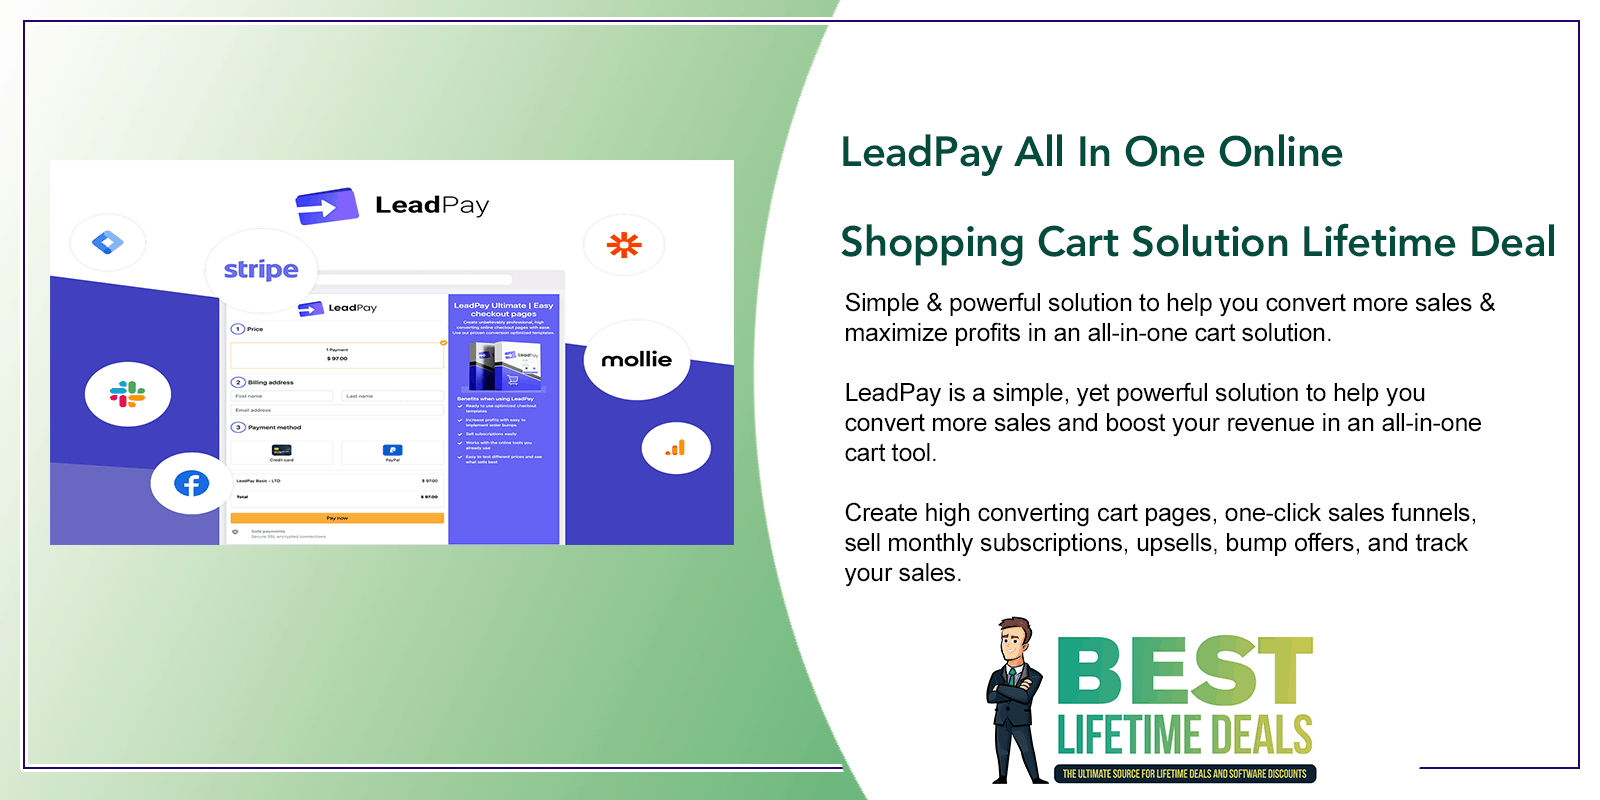 LeadPay All In One Online Shopping Cart Solution Lifetime Deal